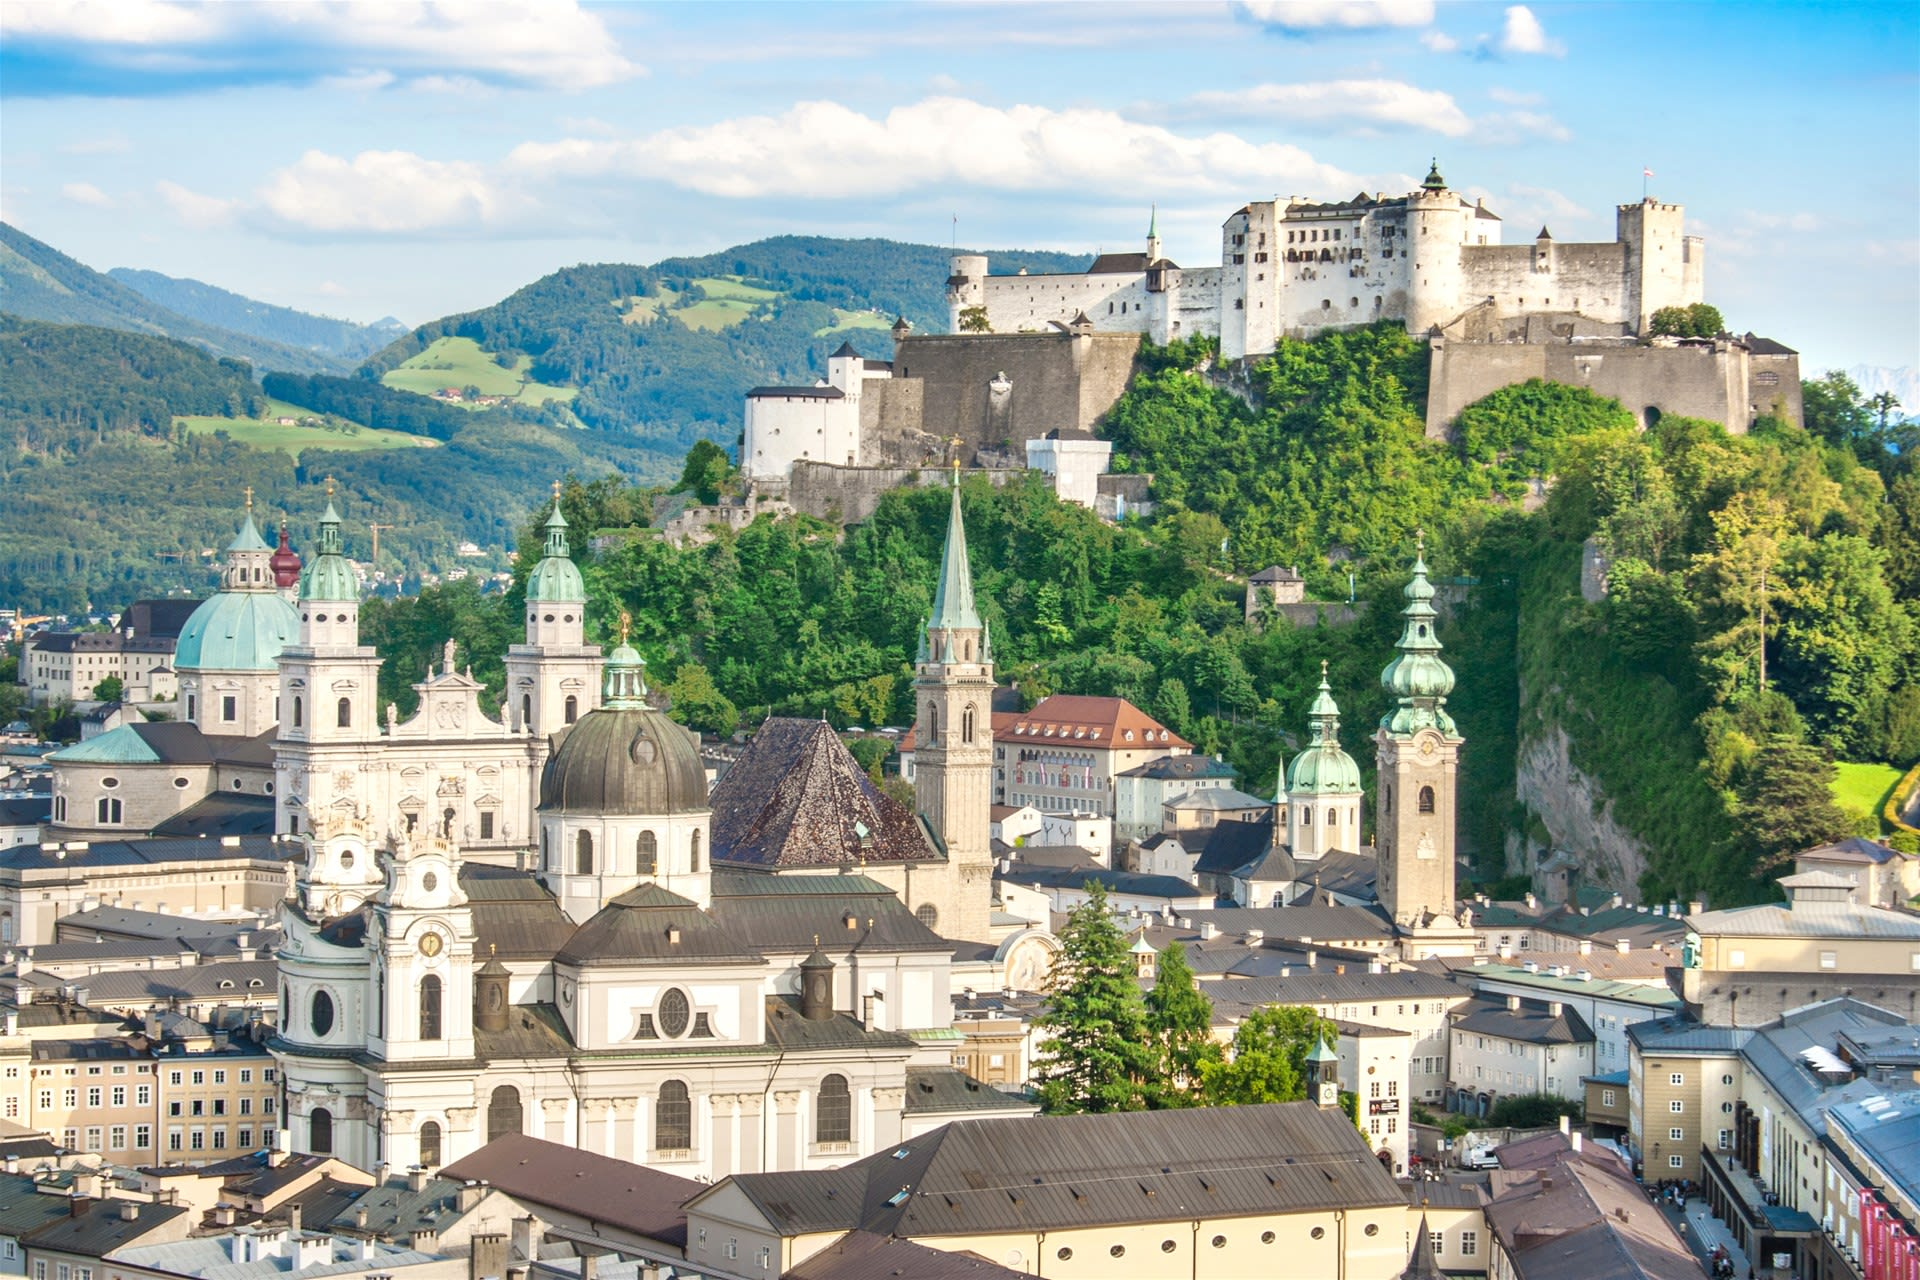 Austria's Grand Imperial Cities by Rail